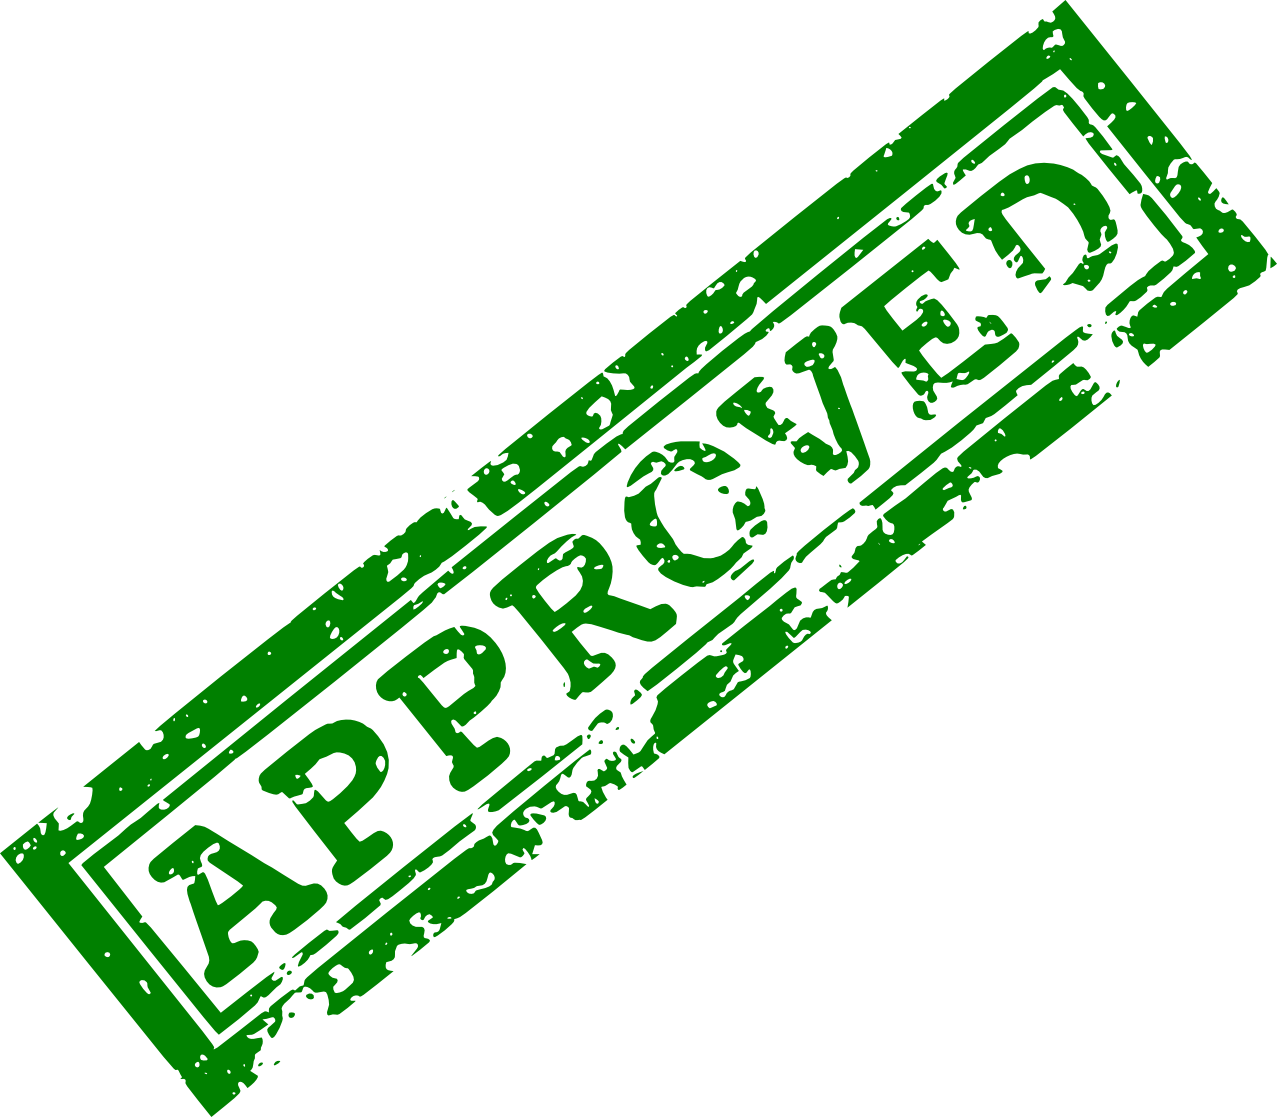 red green approved stamp png transparent onlygfxm #28682